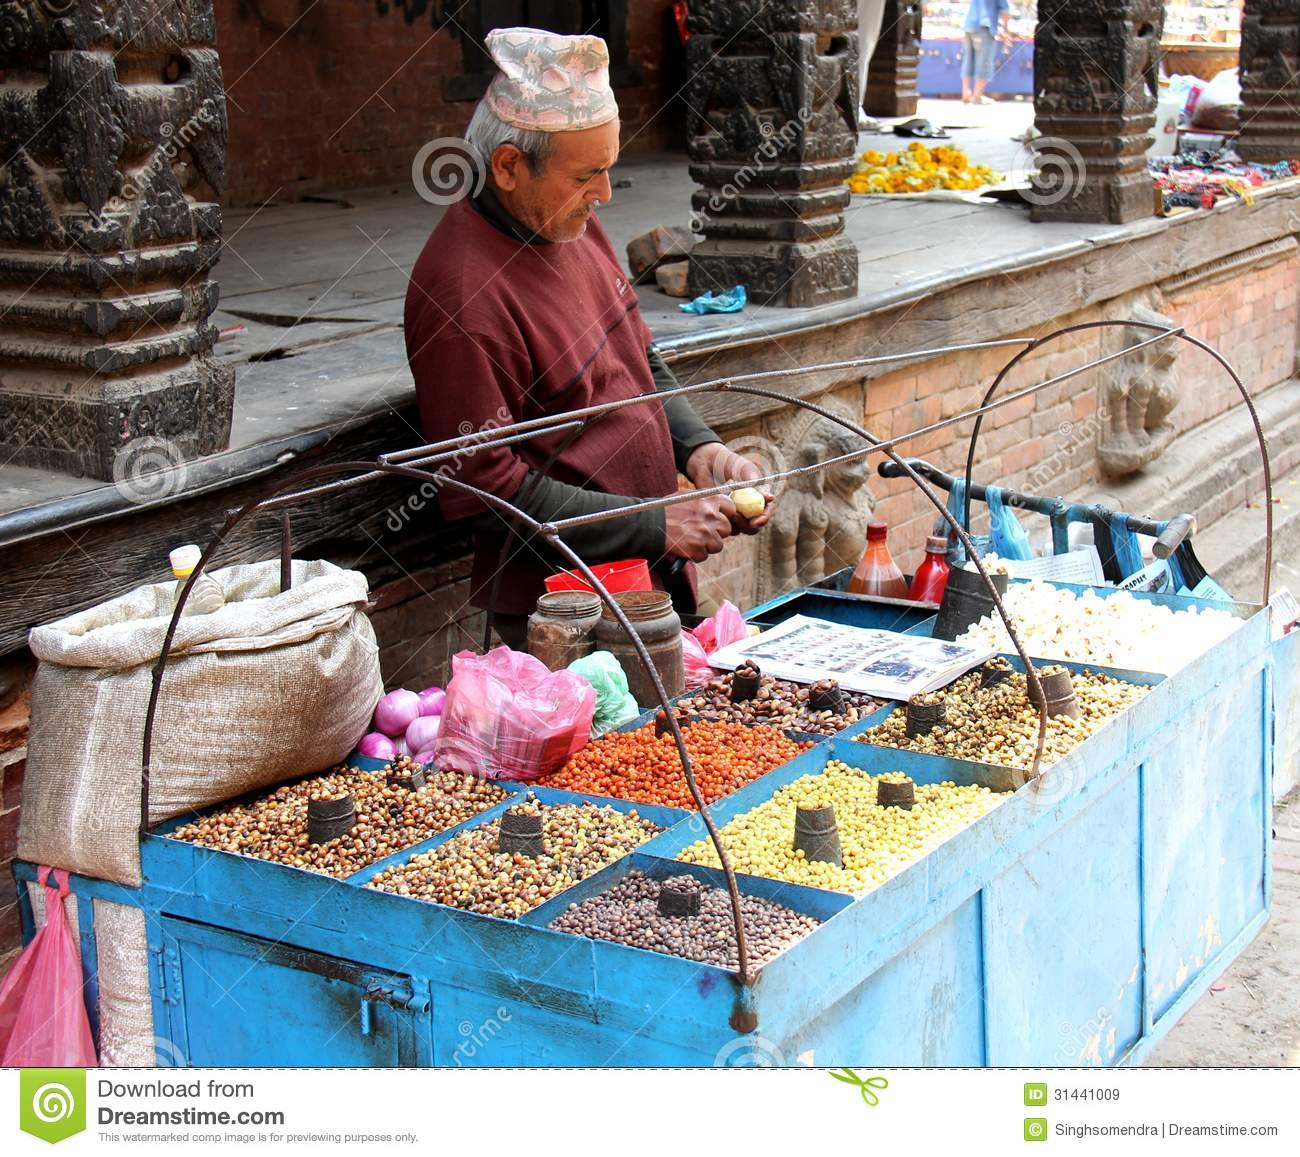 Patan Darbar, Check Out Patan Darbar : cnTRAVEL